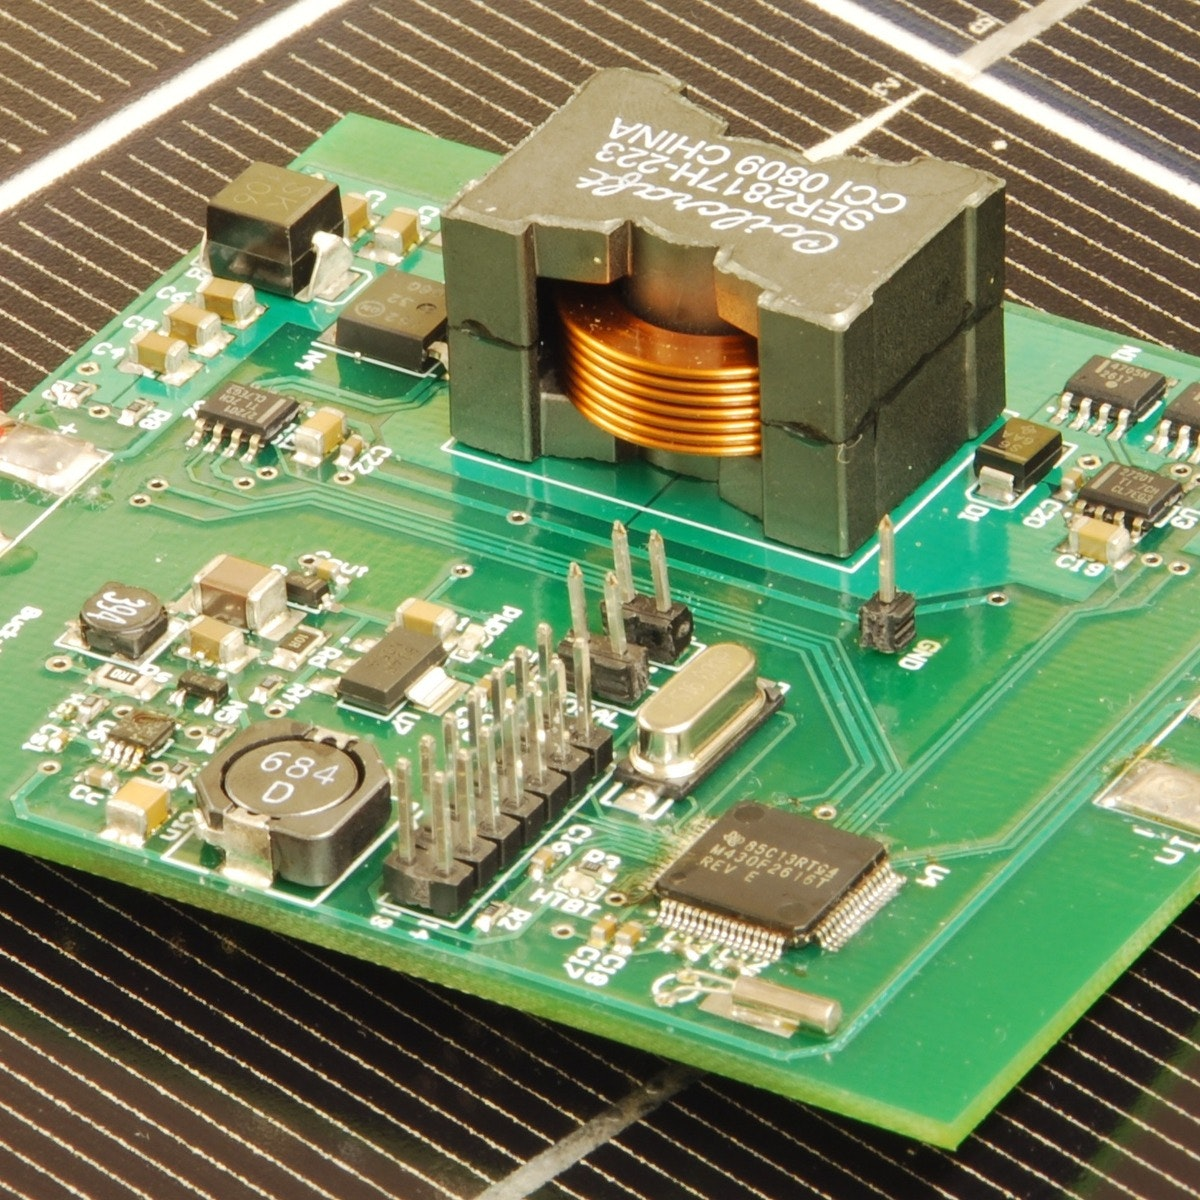 Capstone Design Project in Power Electronics | Coursera